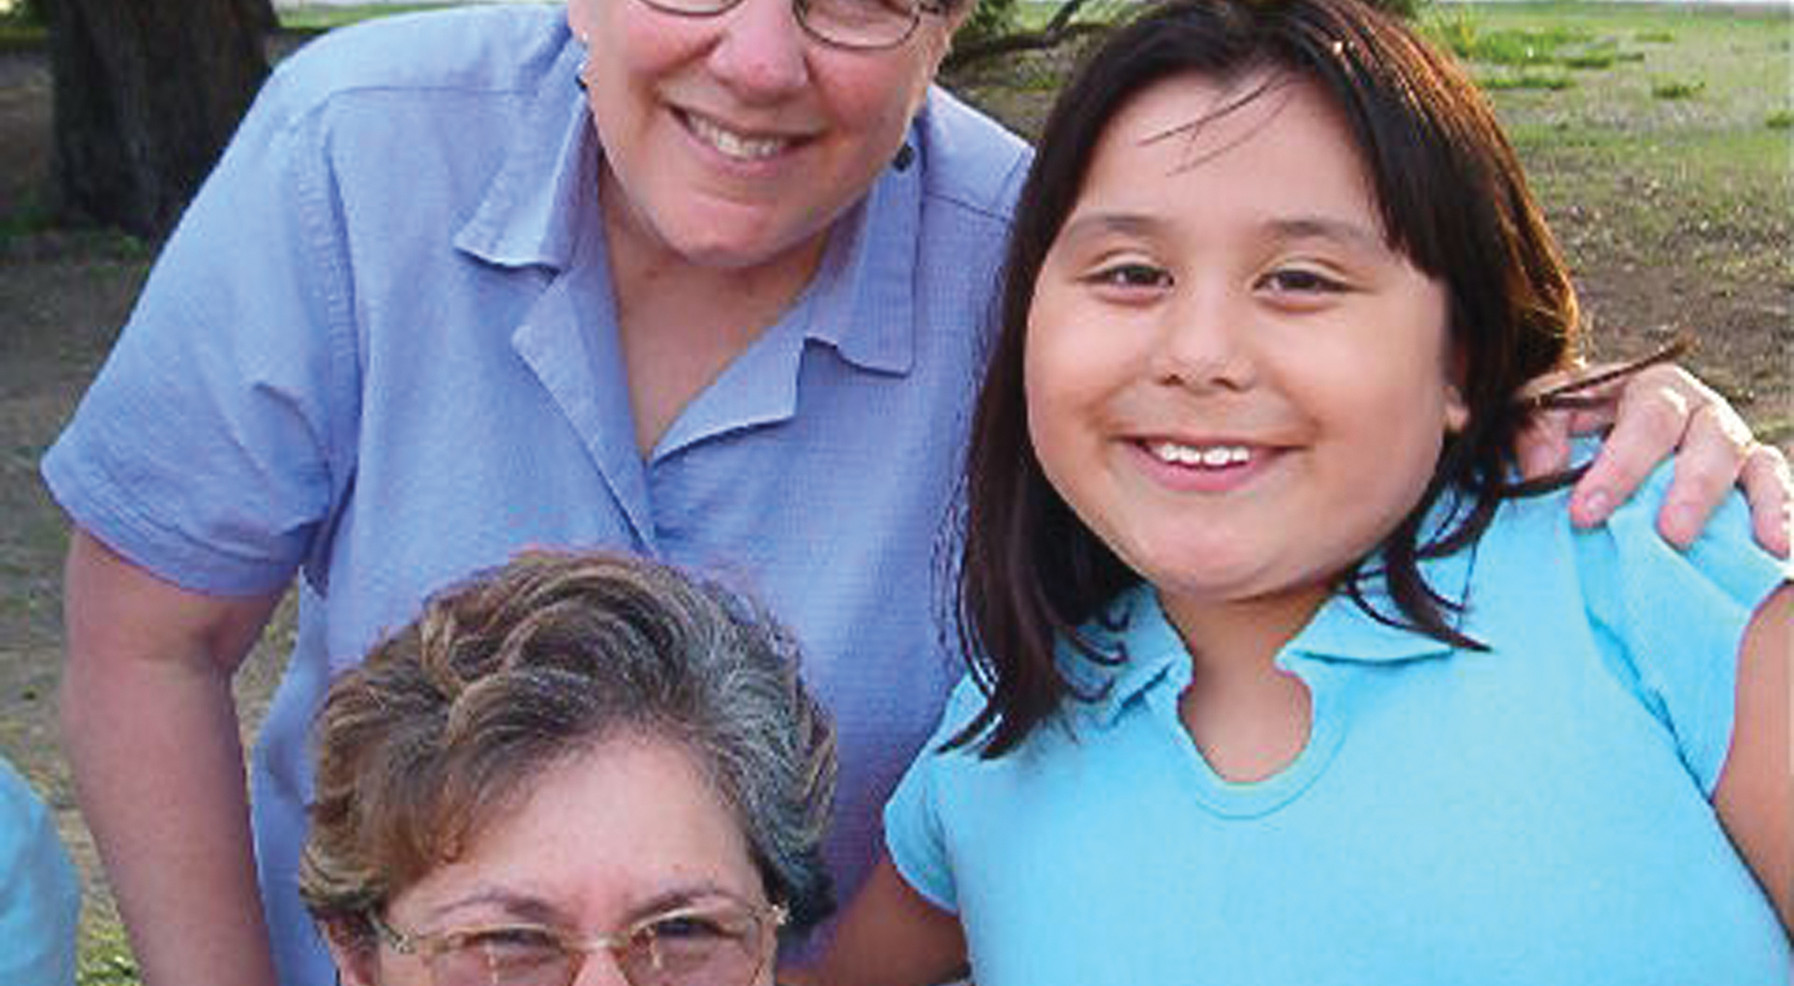 Sr. Cindy Stacy ministered at Visitation House for more than 20 years. Visitation House has extended into the broader community with La Casita Learning Center. Her work has empowered women through education, thus changing lives of future generations.